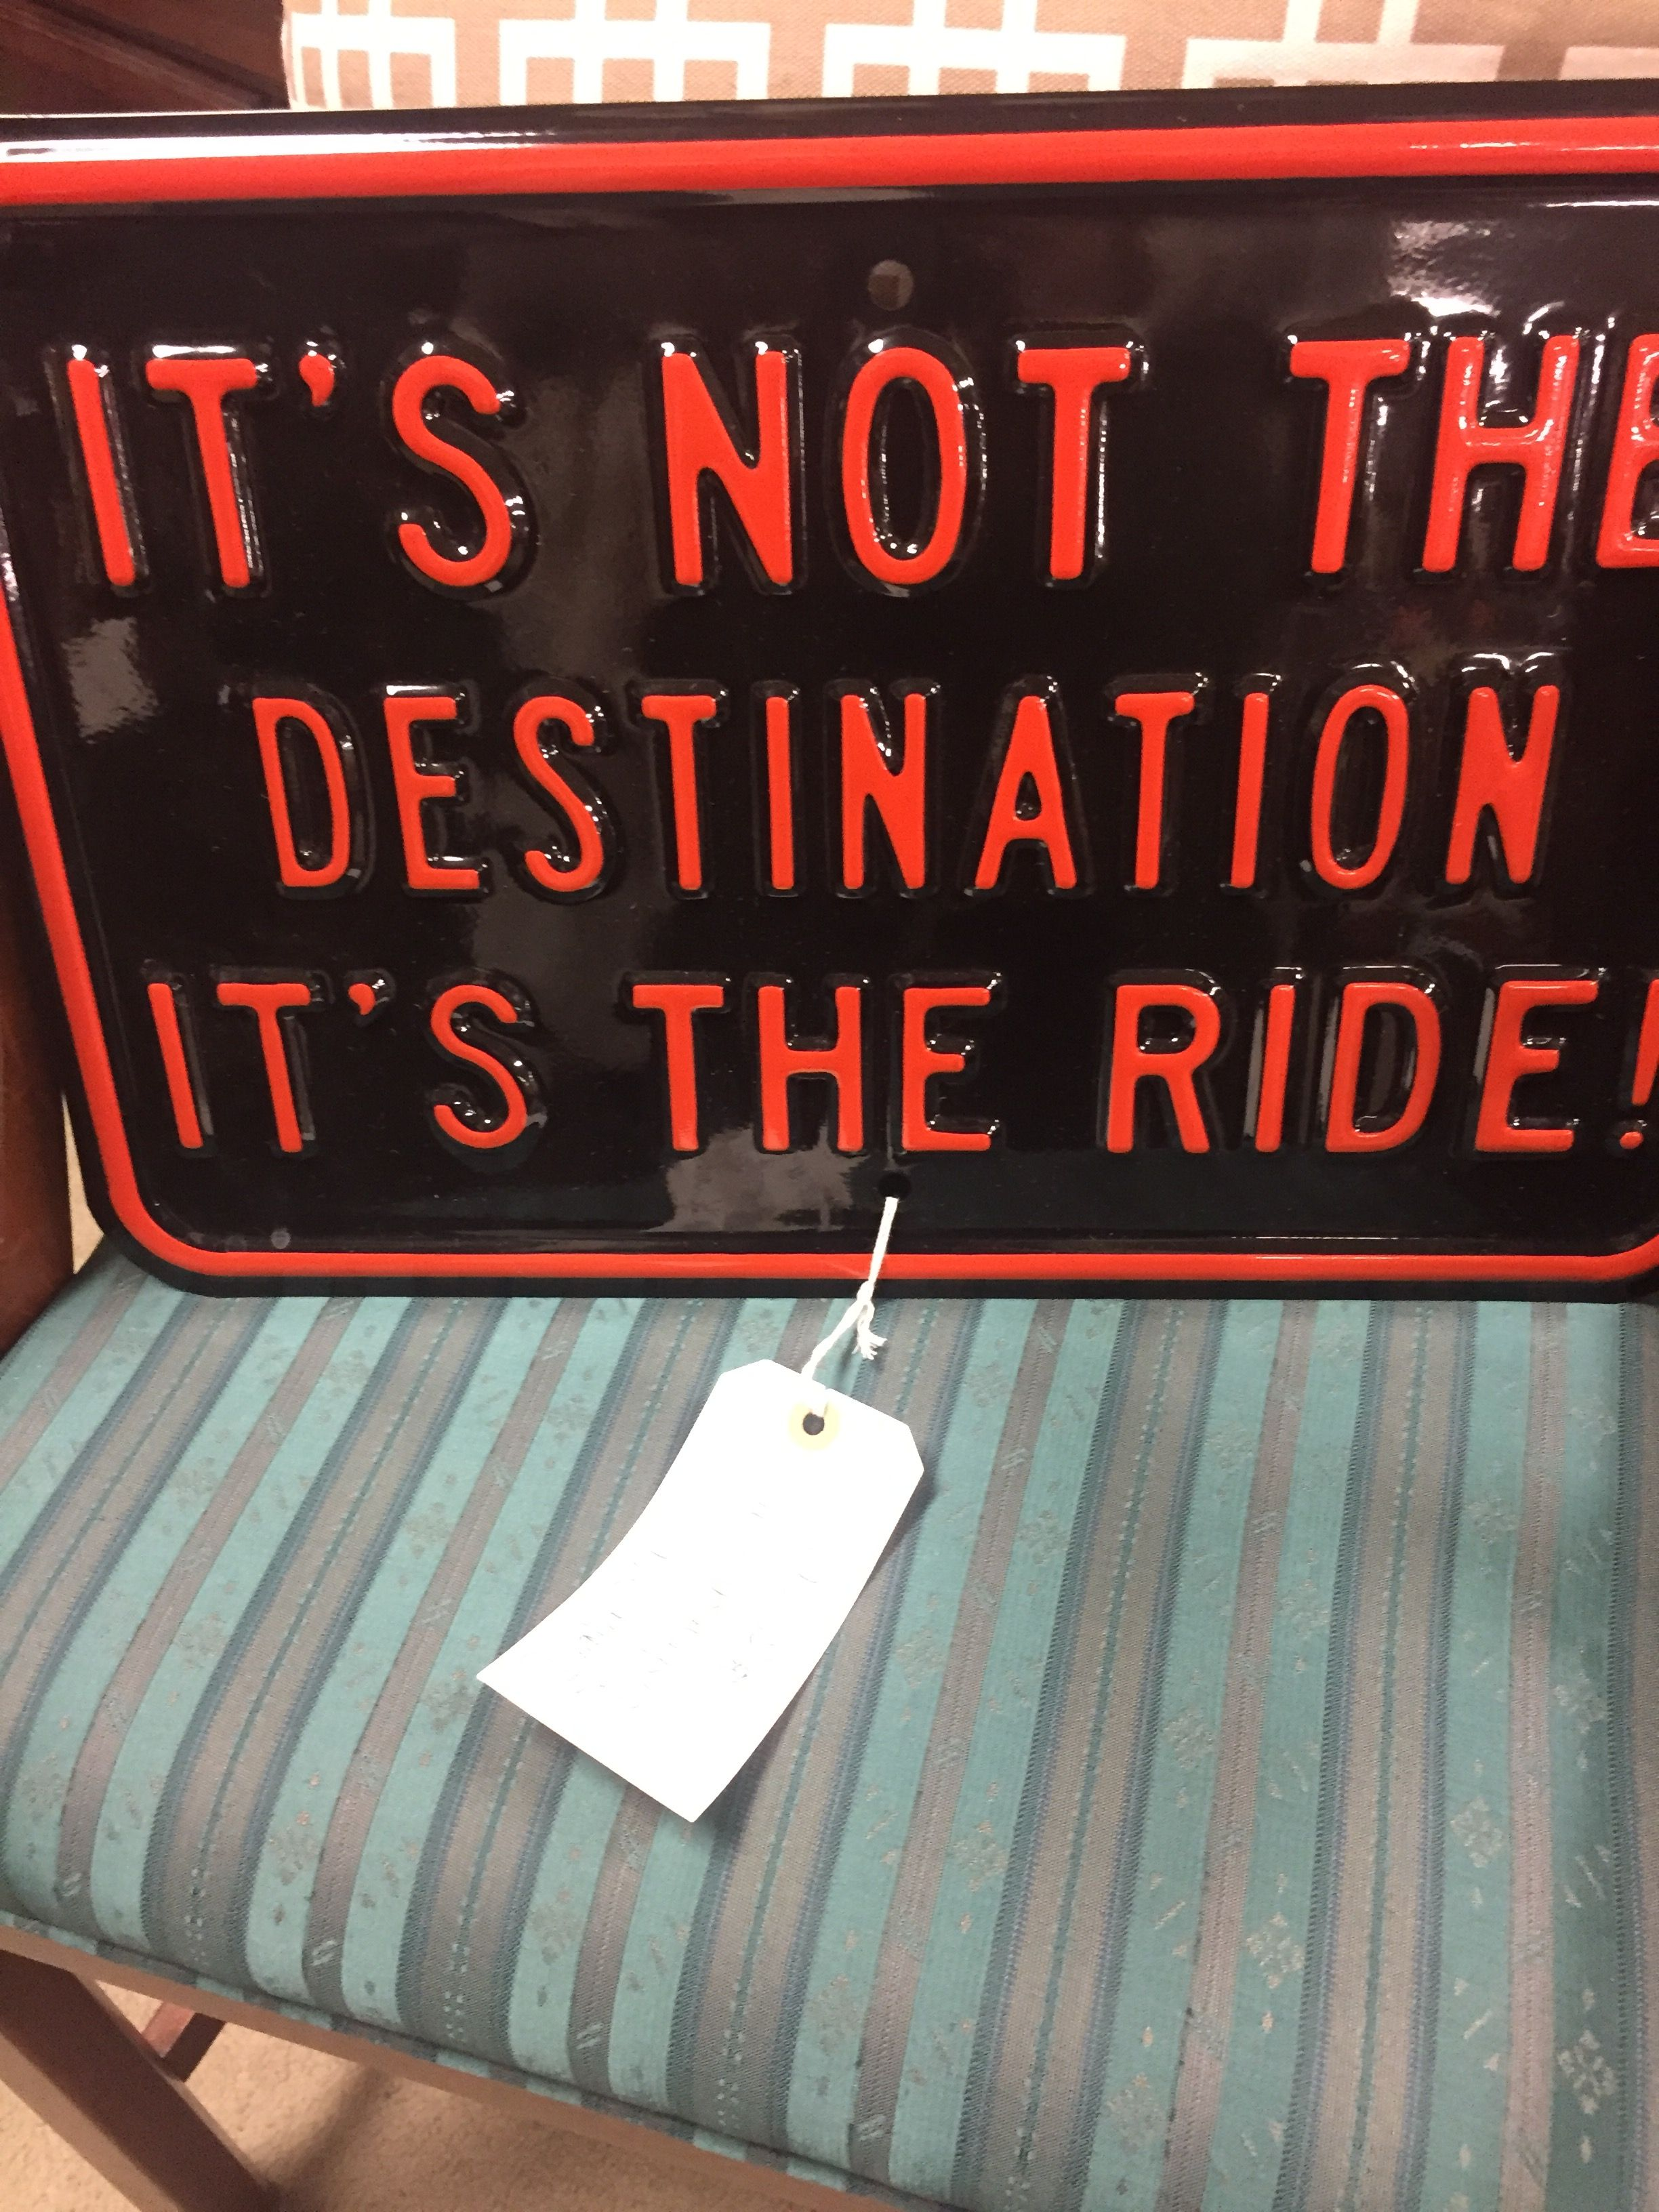 It's not the destination, It's the ride!